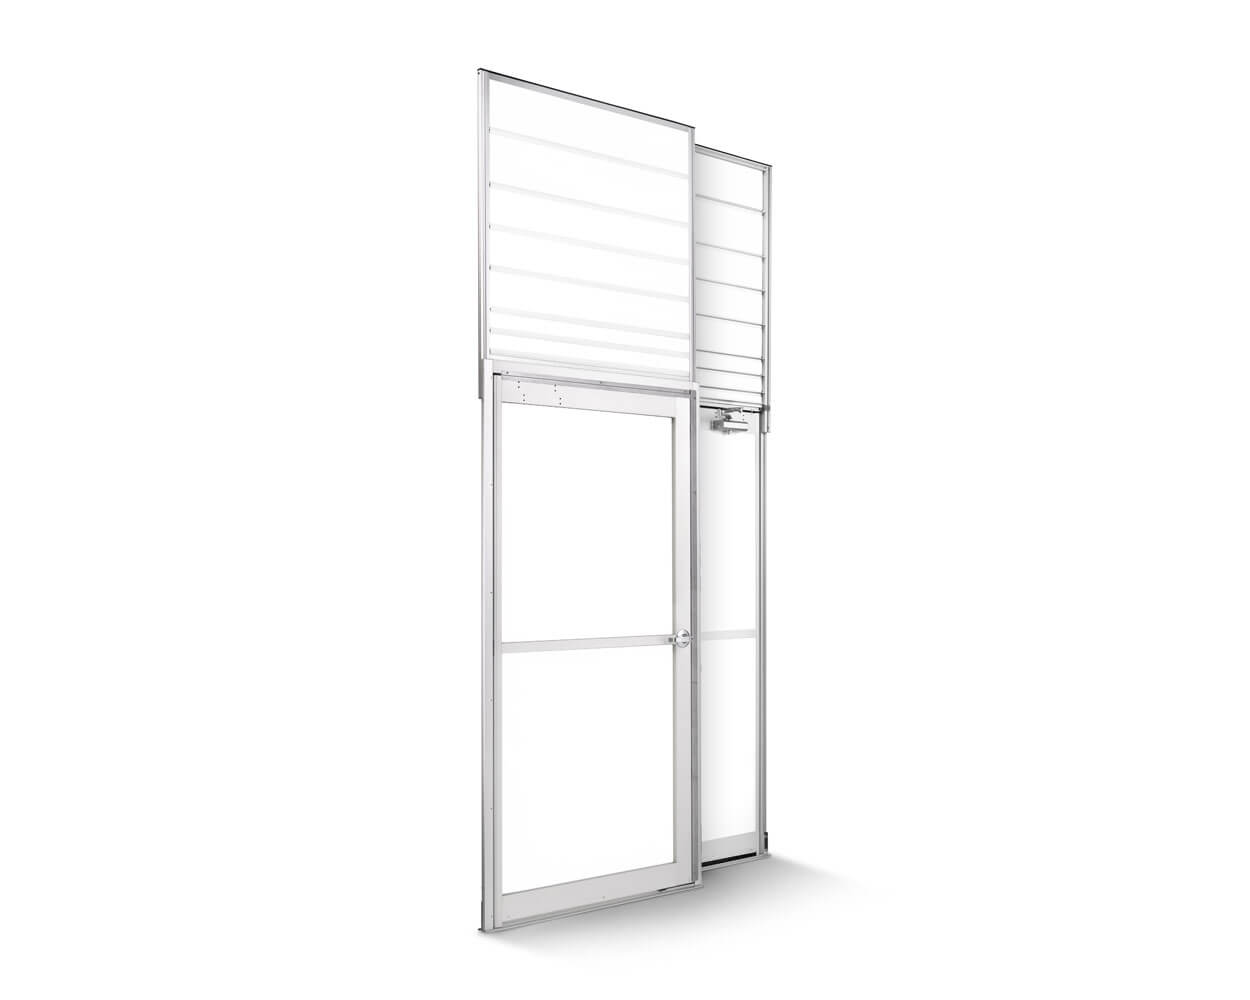 LiteBarrier™ Panel Hinged Door